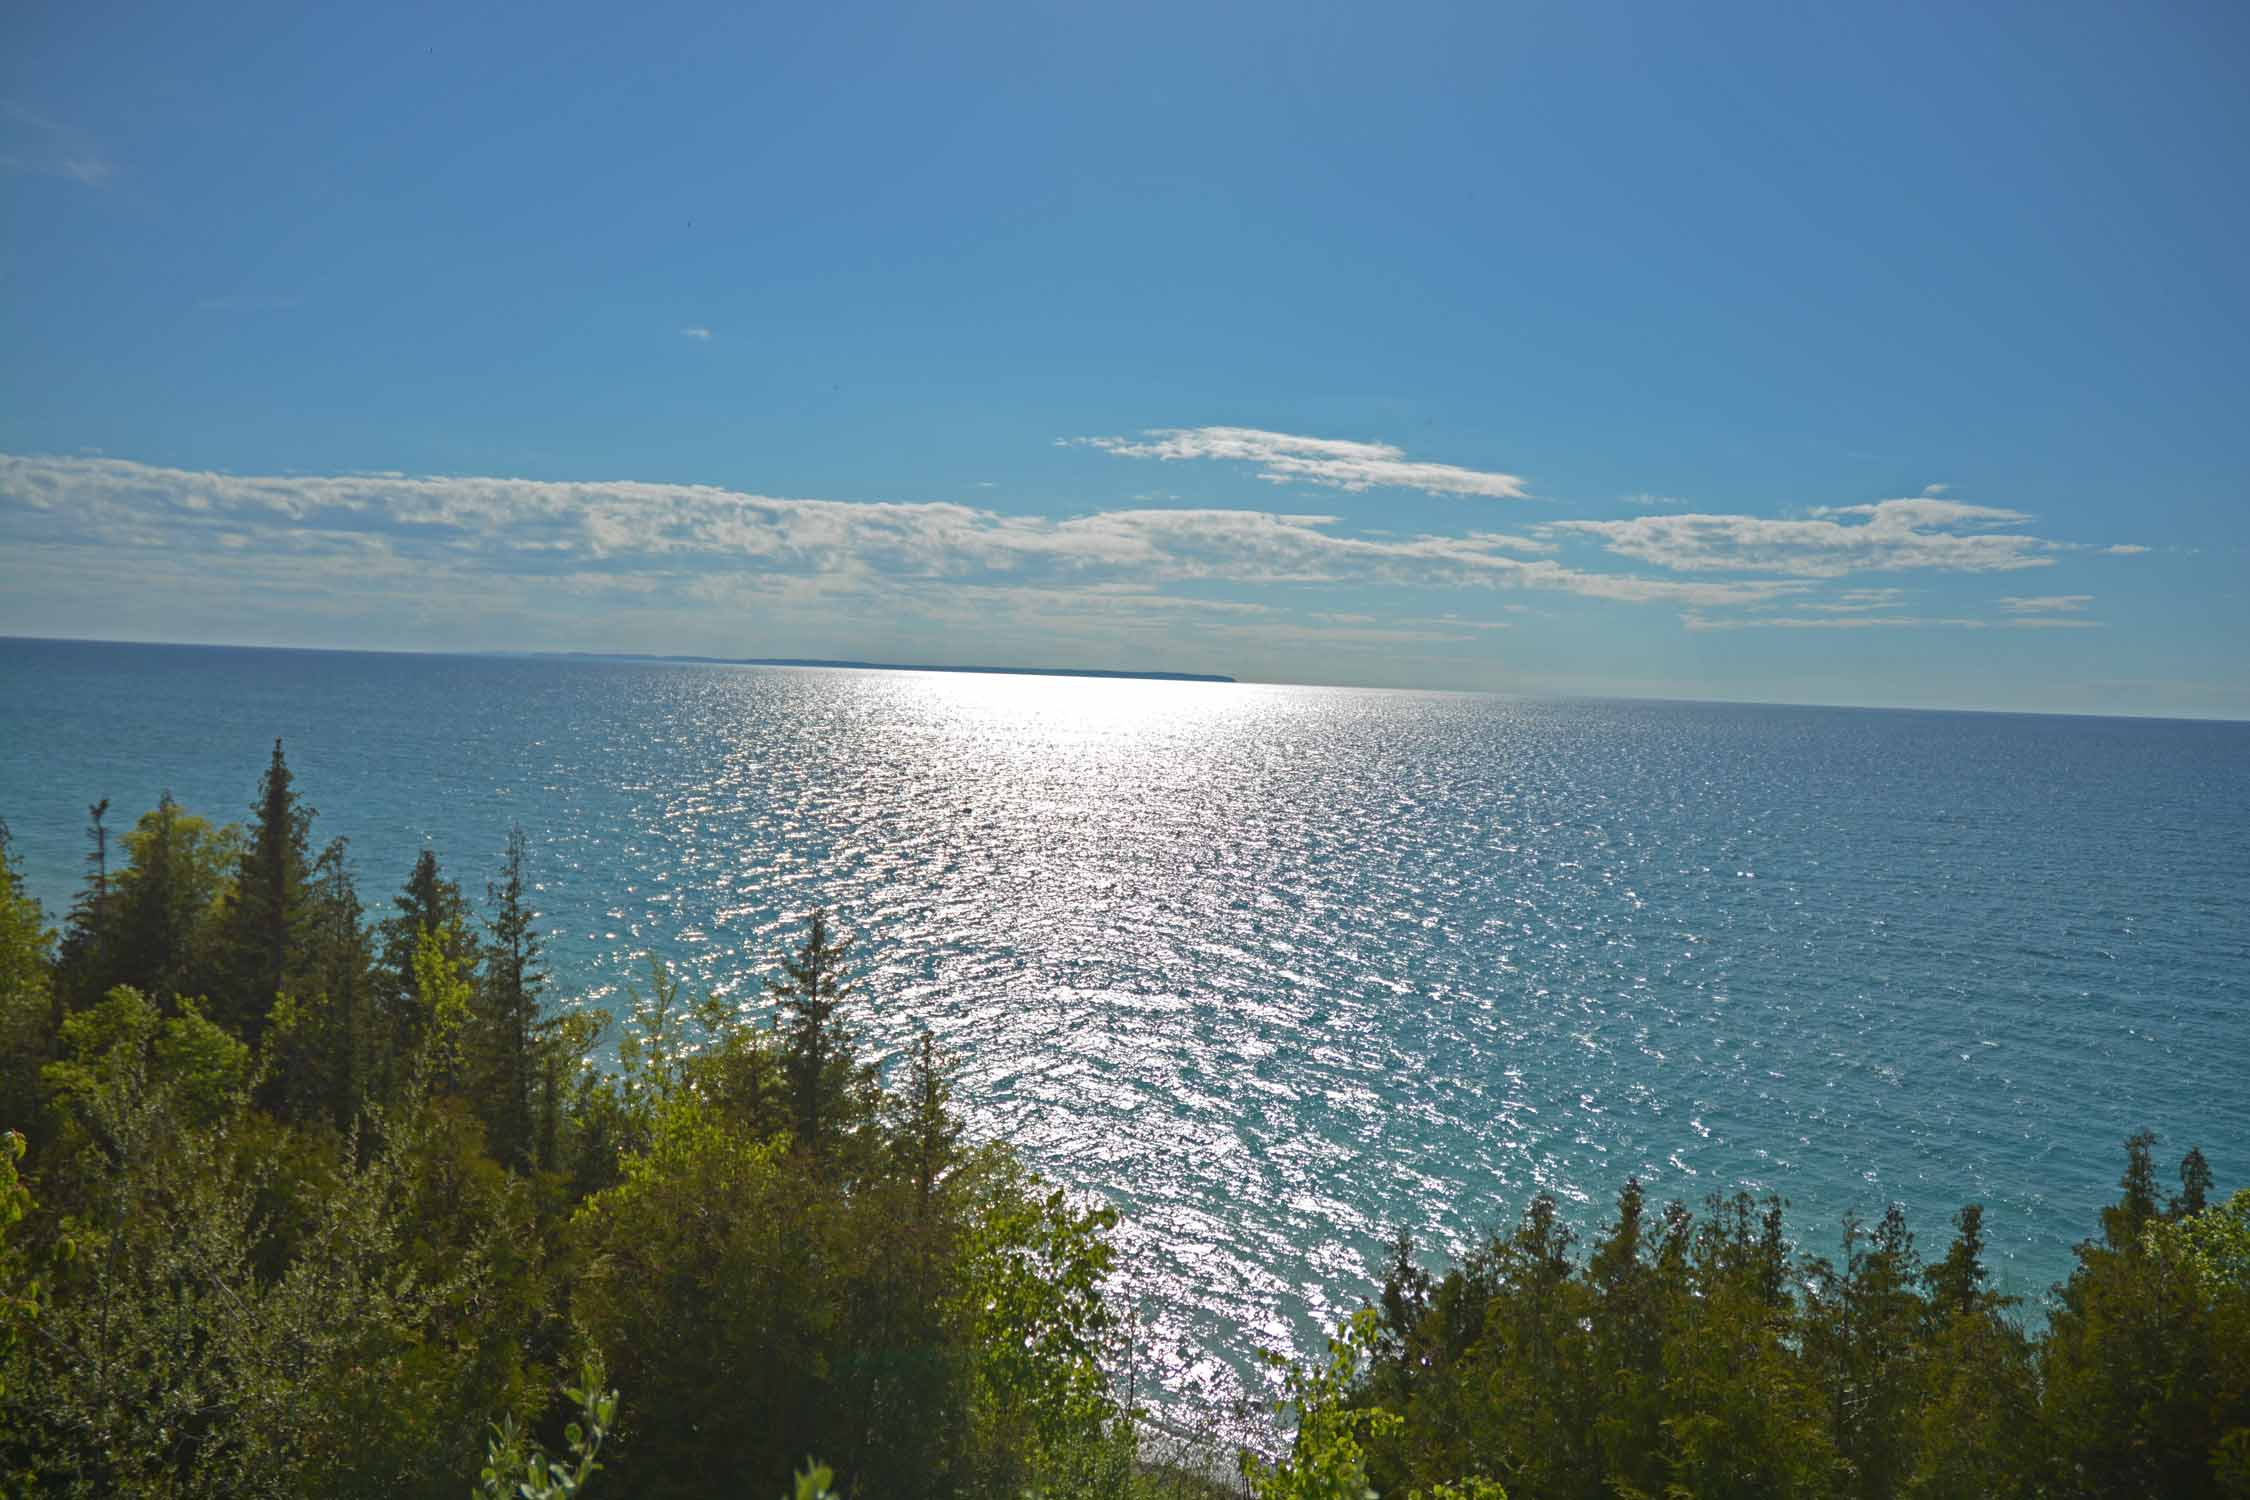 Yes, we will miss views like this of Lake Michigan which have been part of our life for over 50 years.